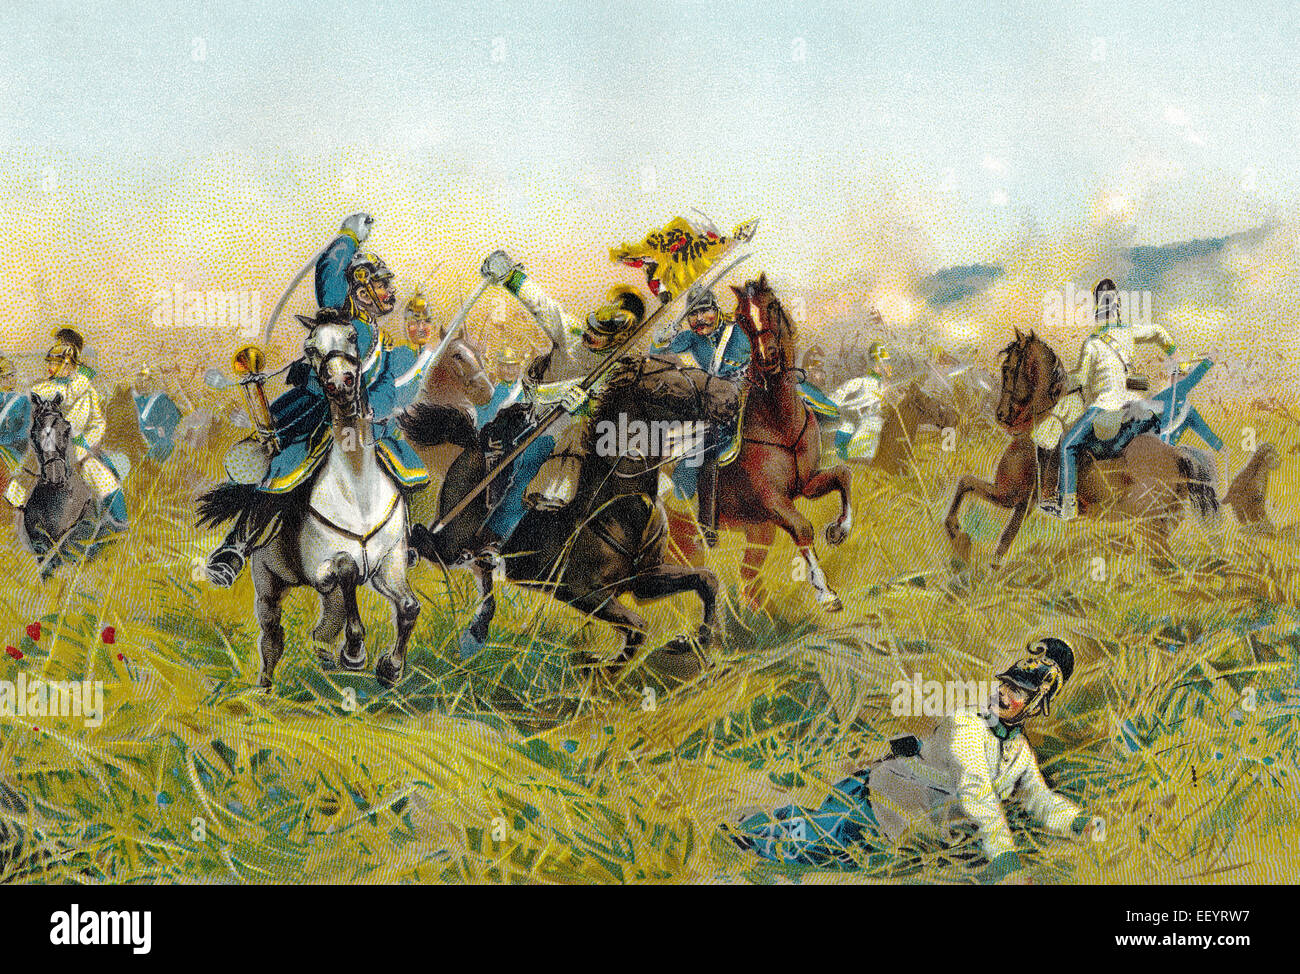 The Battle of Nachod on 27 June 1866, the first major action of the Austro-Prussian War, Die Schlacht bei Nachod - Stock Image